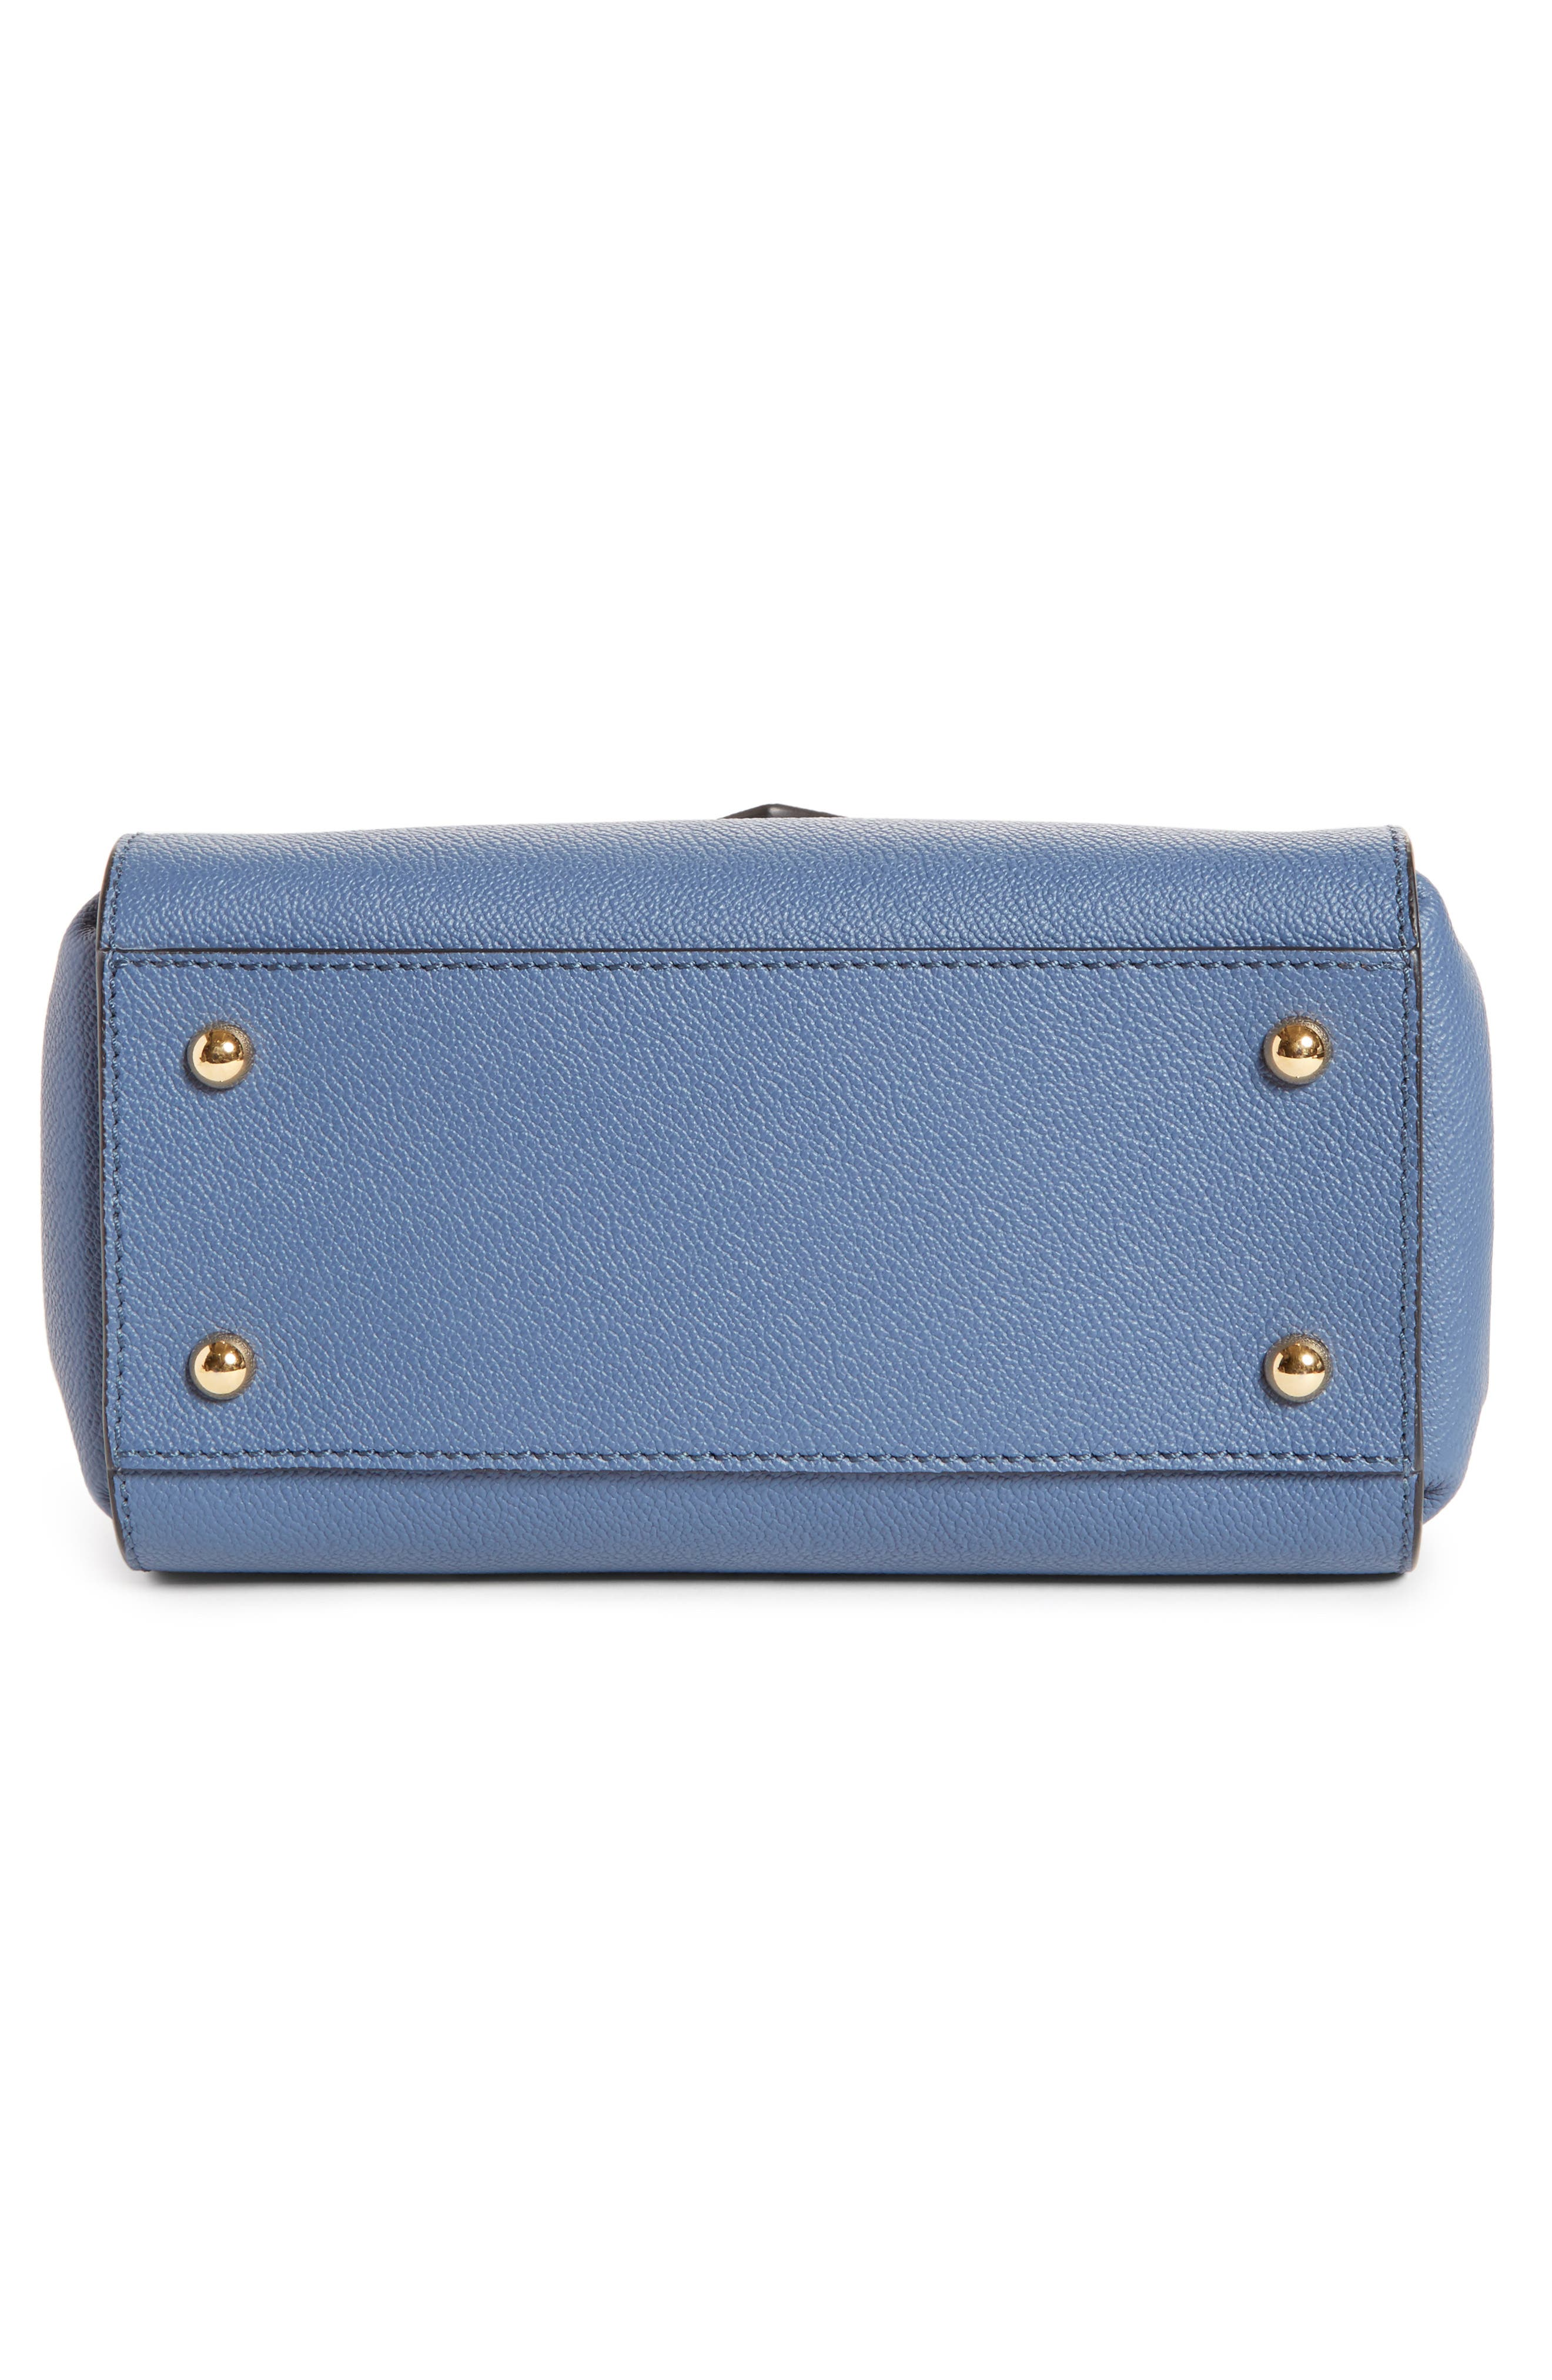 Small Buckle Leather Satchel,                             Alternate thumbnail 6, color,                             Steel Blue